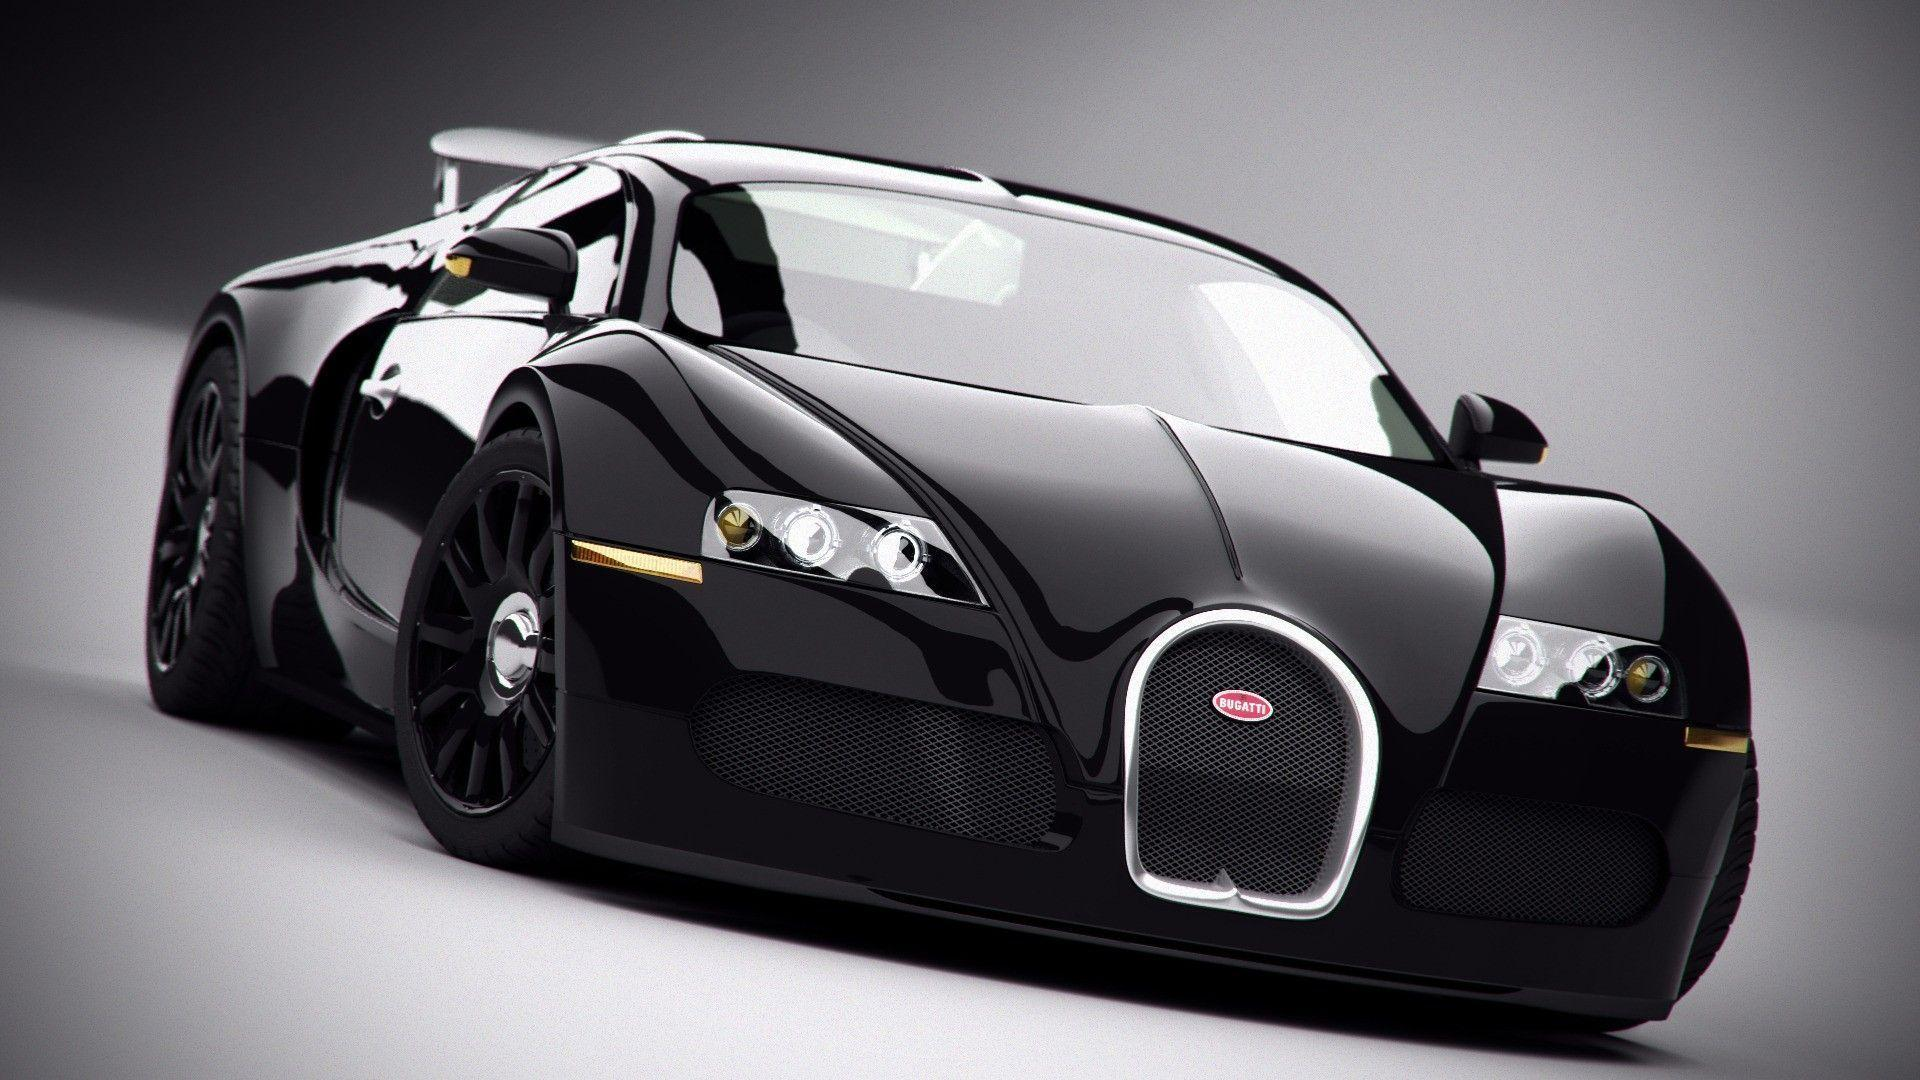 Bugatti Veyron Super Sport Wallpaper Hd